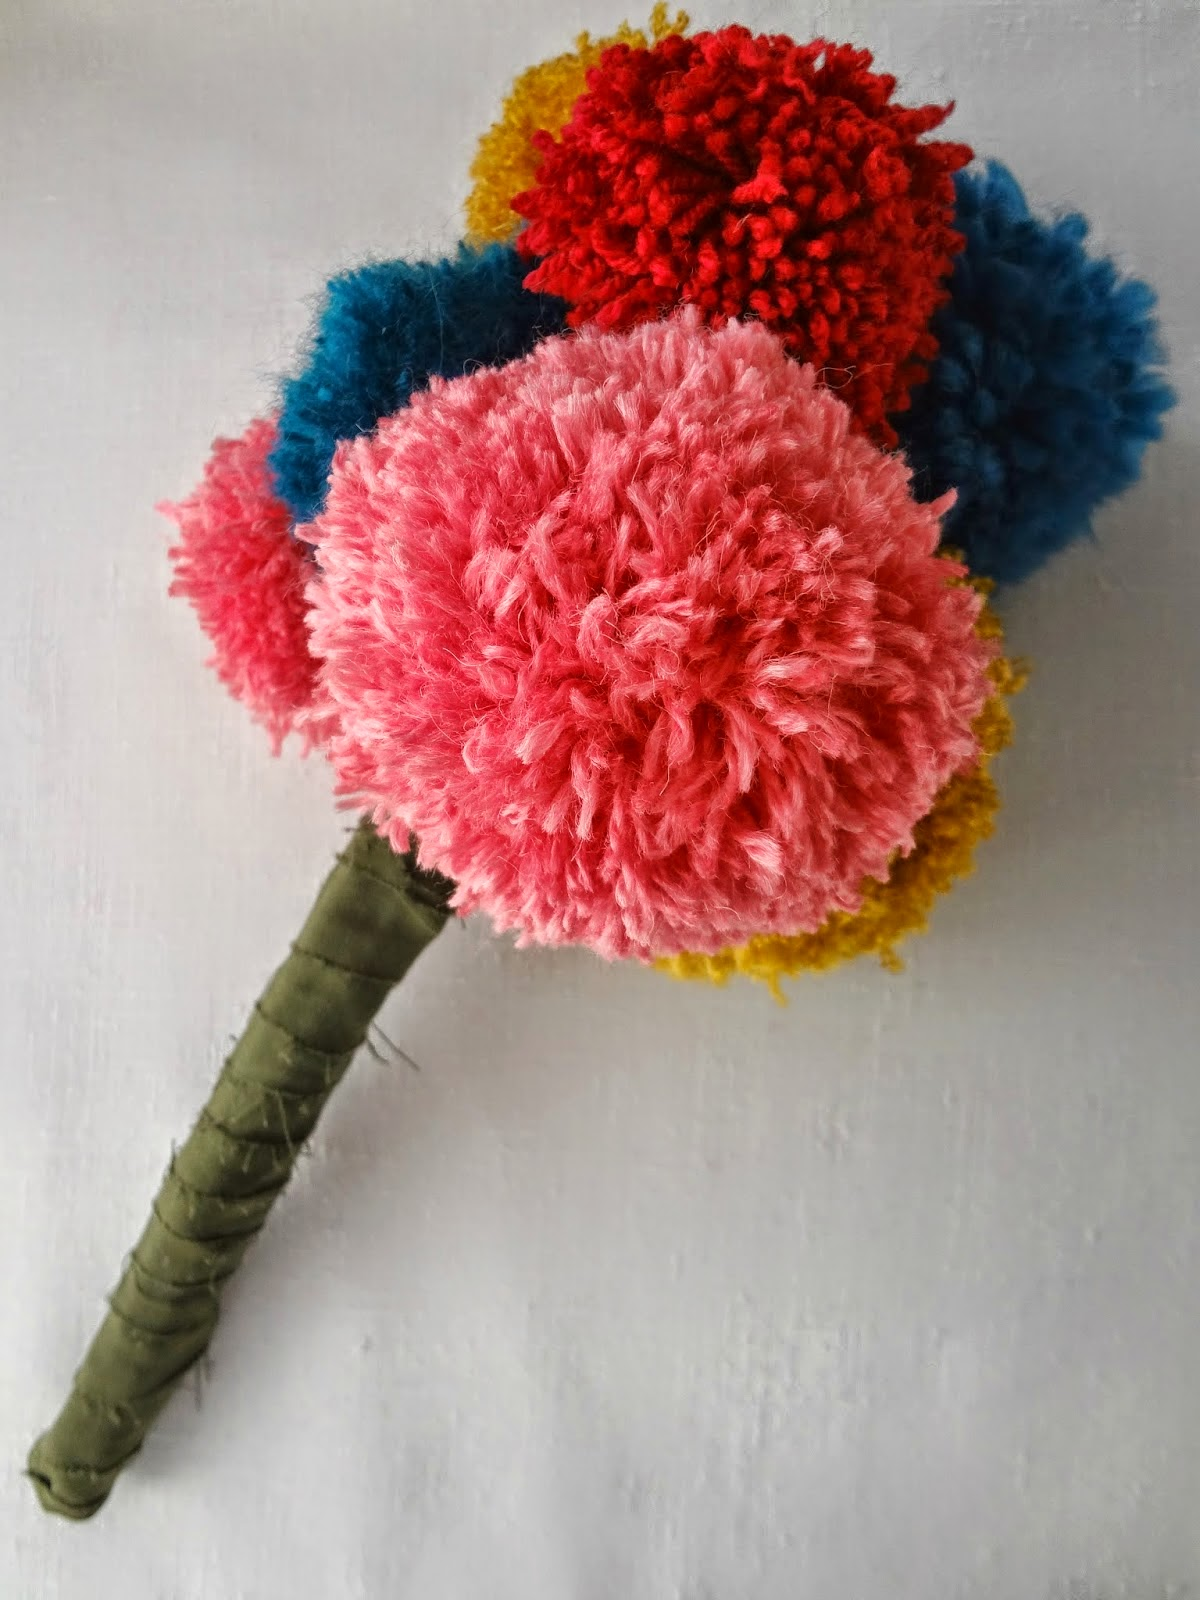 http://thelittletreasures.blogspot.com/2015/01/pom-pom-bouquet-how-to.html